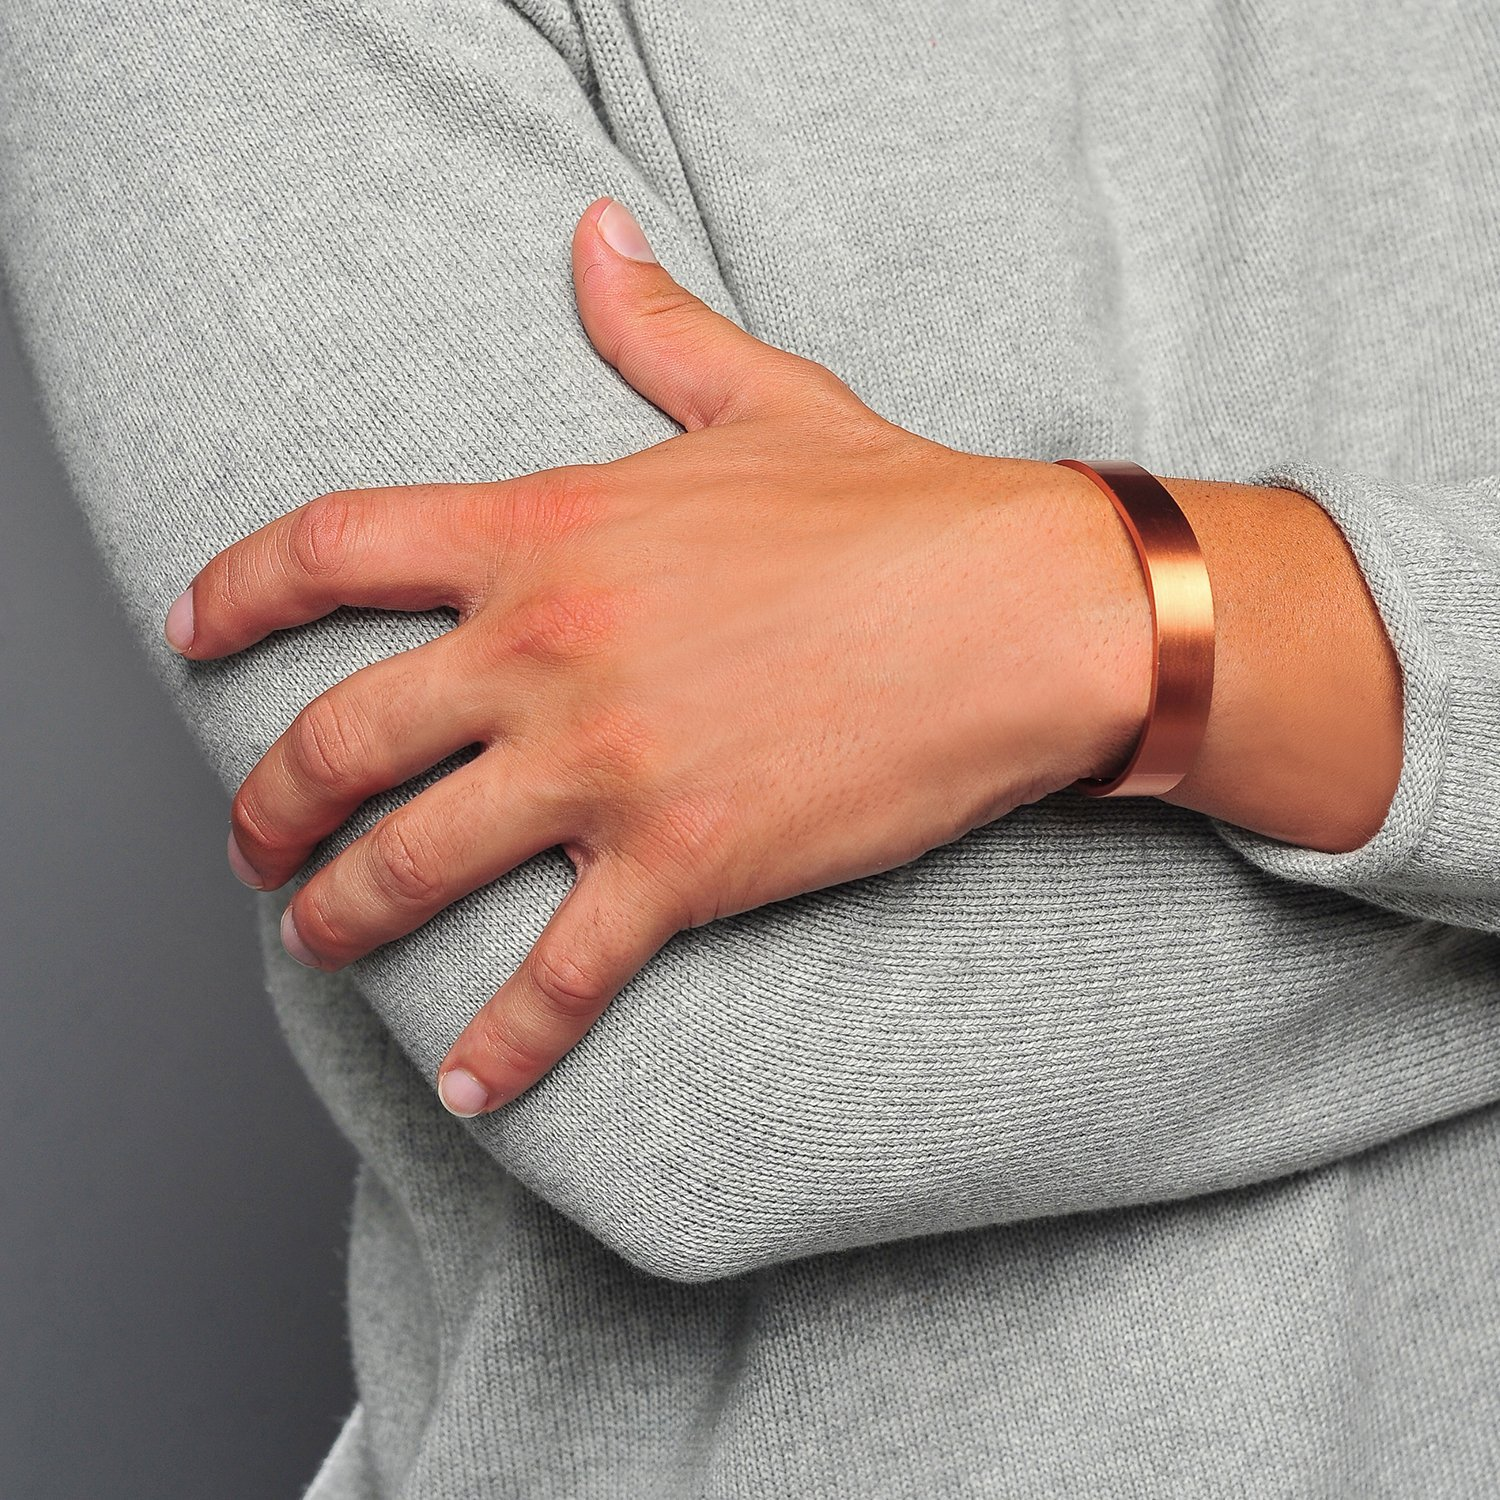 Sufferers wear copper jewelry in the hopes of easing symptoms - Amazon Com Pure Copper Magnetic Therapy Bracelet For Arthritis Rsi Carpal Tunnel Migraines Fatigue Health Personal Care